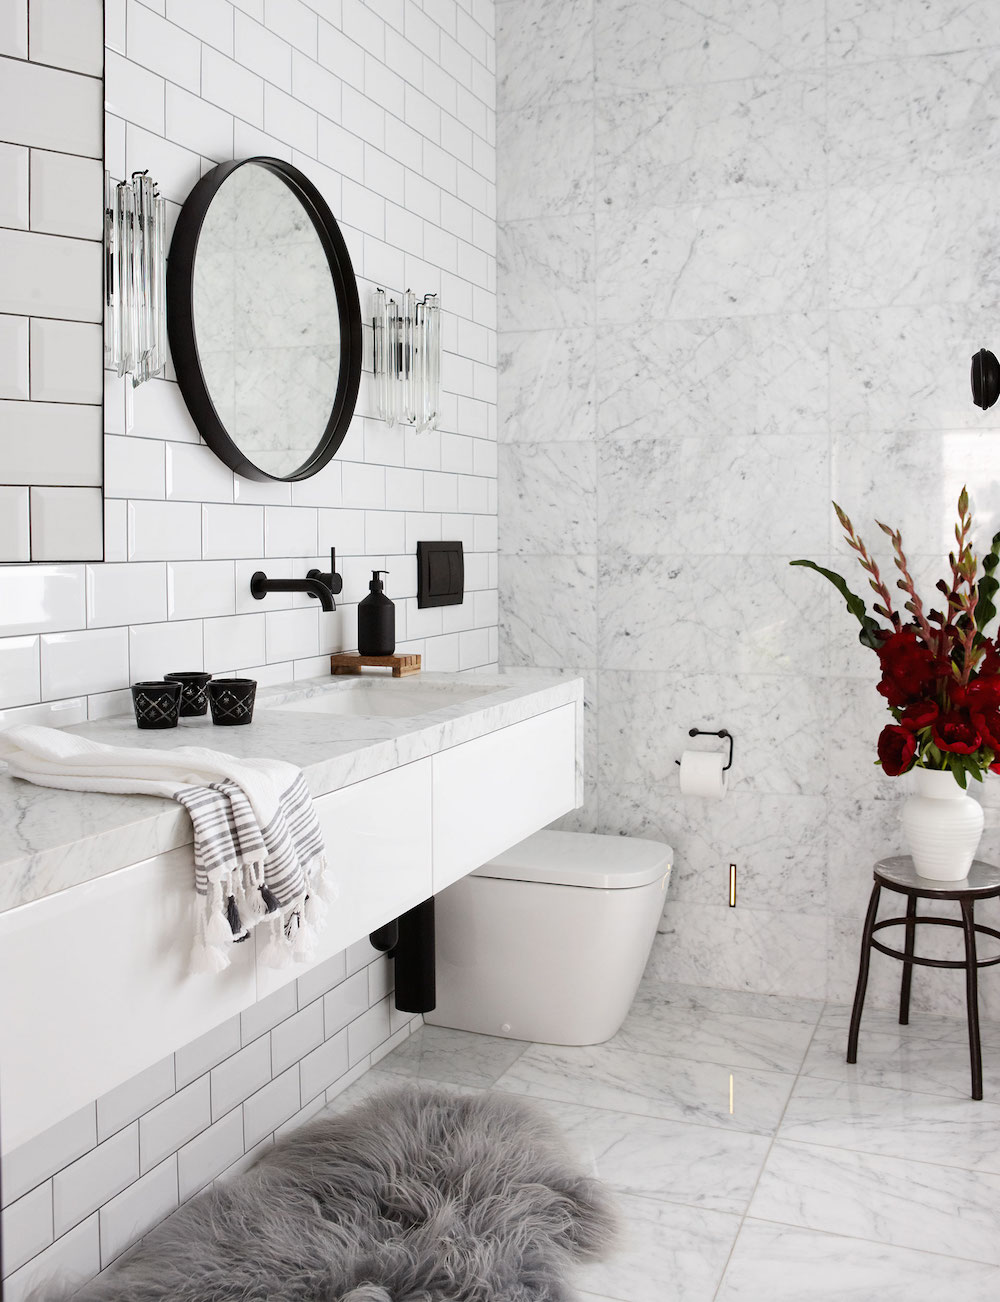 Marble Bathroom with Gray Fur Rug and Black Fixtures